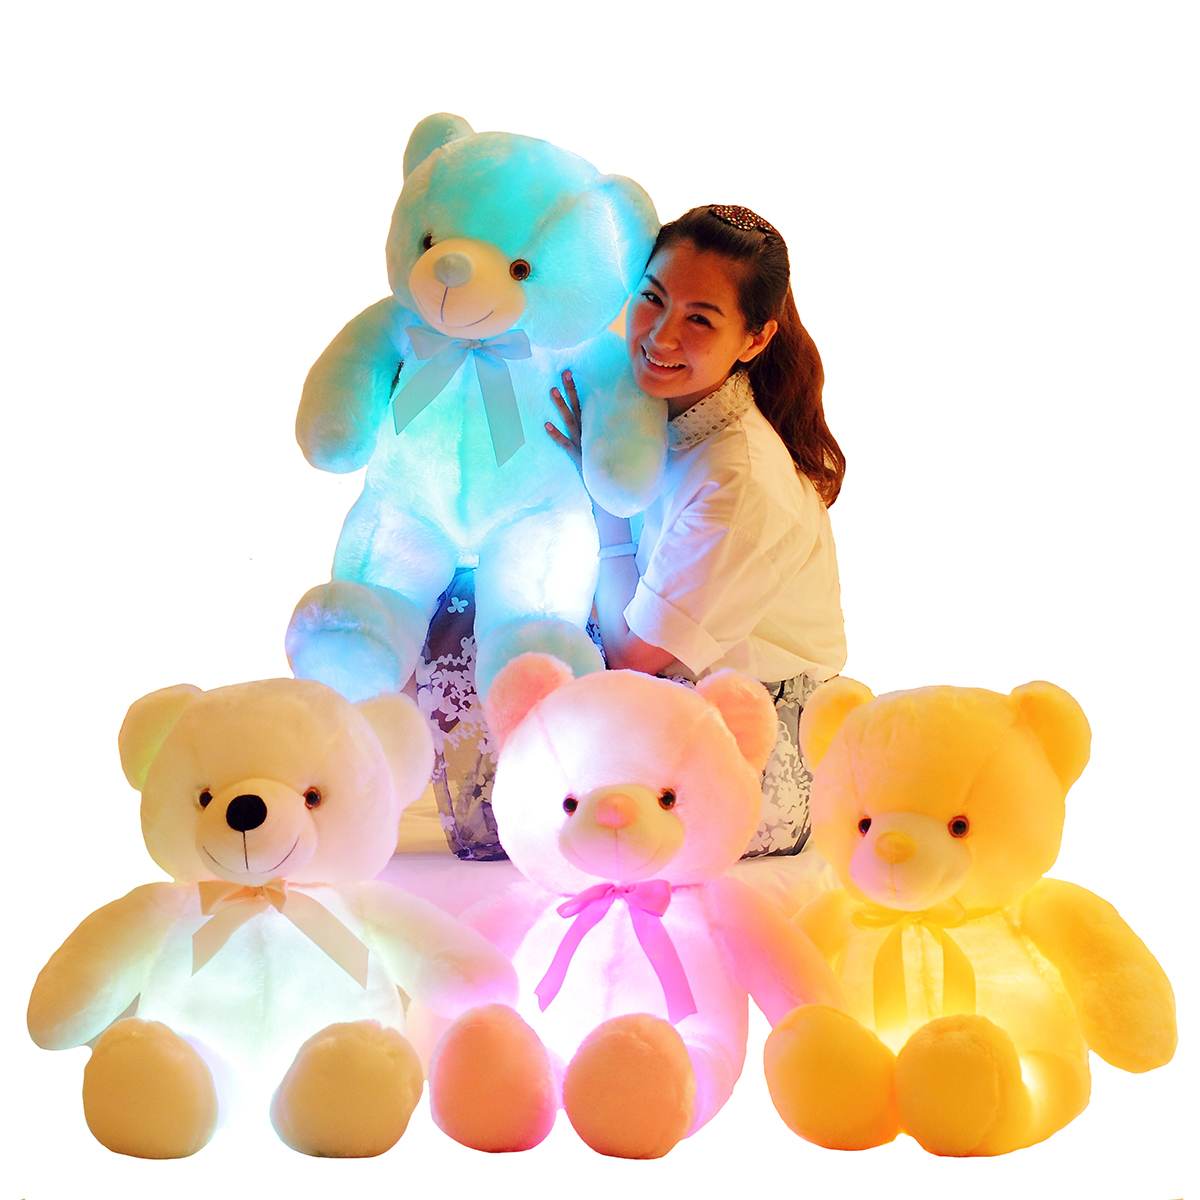 Luminous 25/30/50cm Creative Light Up LED Colorful Glowing Teddy Bear Stuffed Animal Plush Toy Christmas Gift For Kid